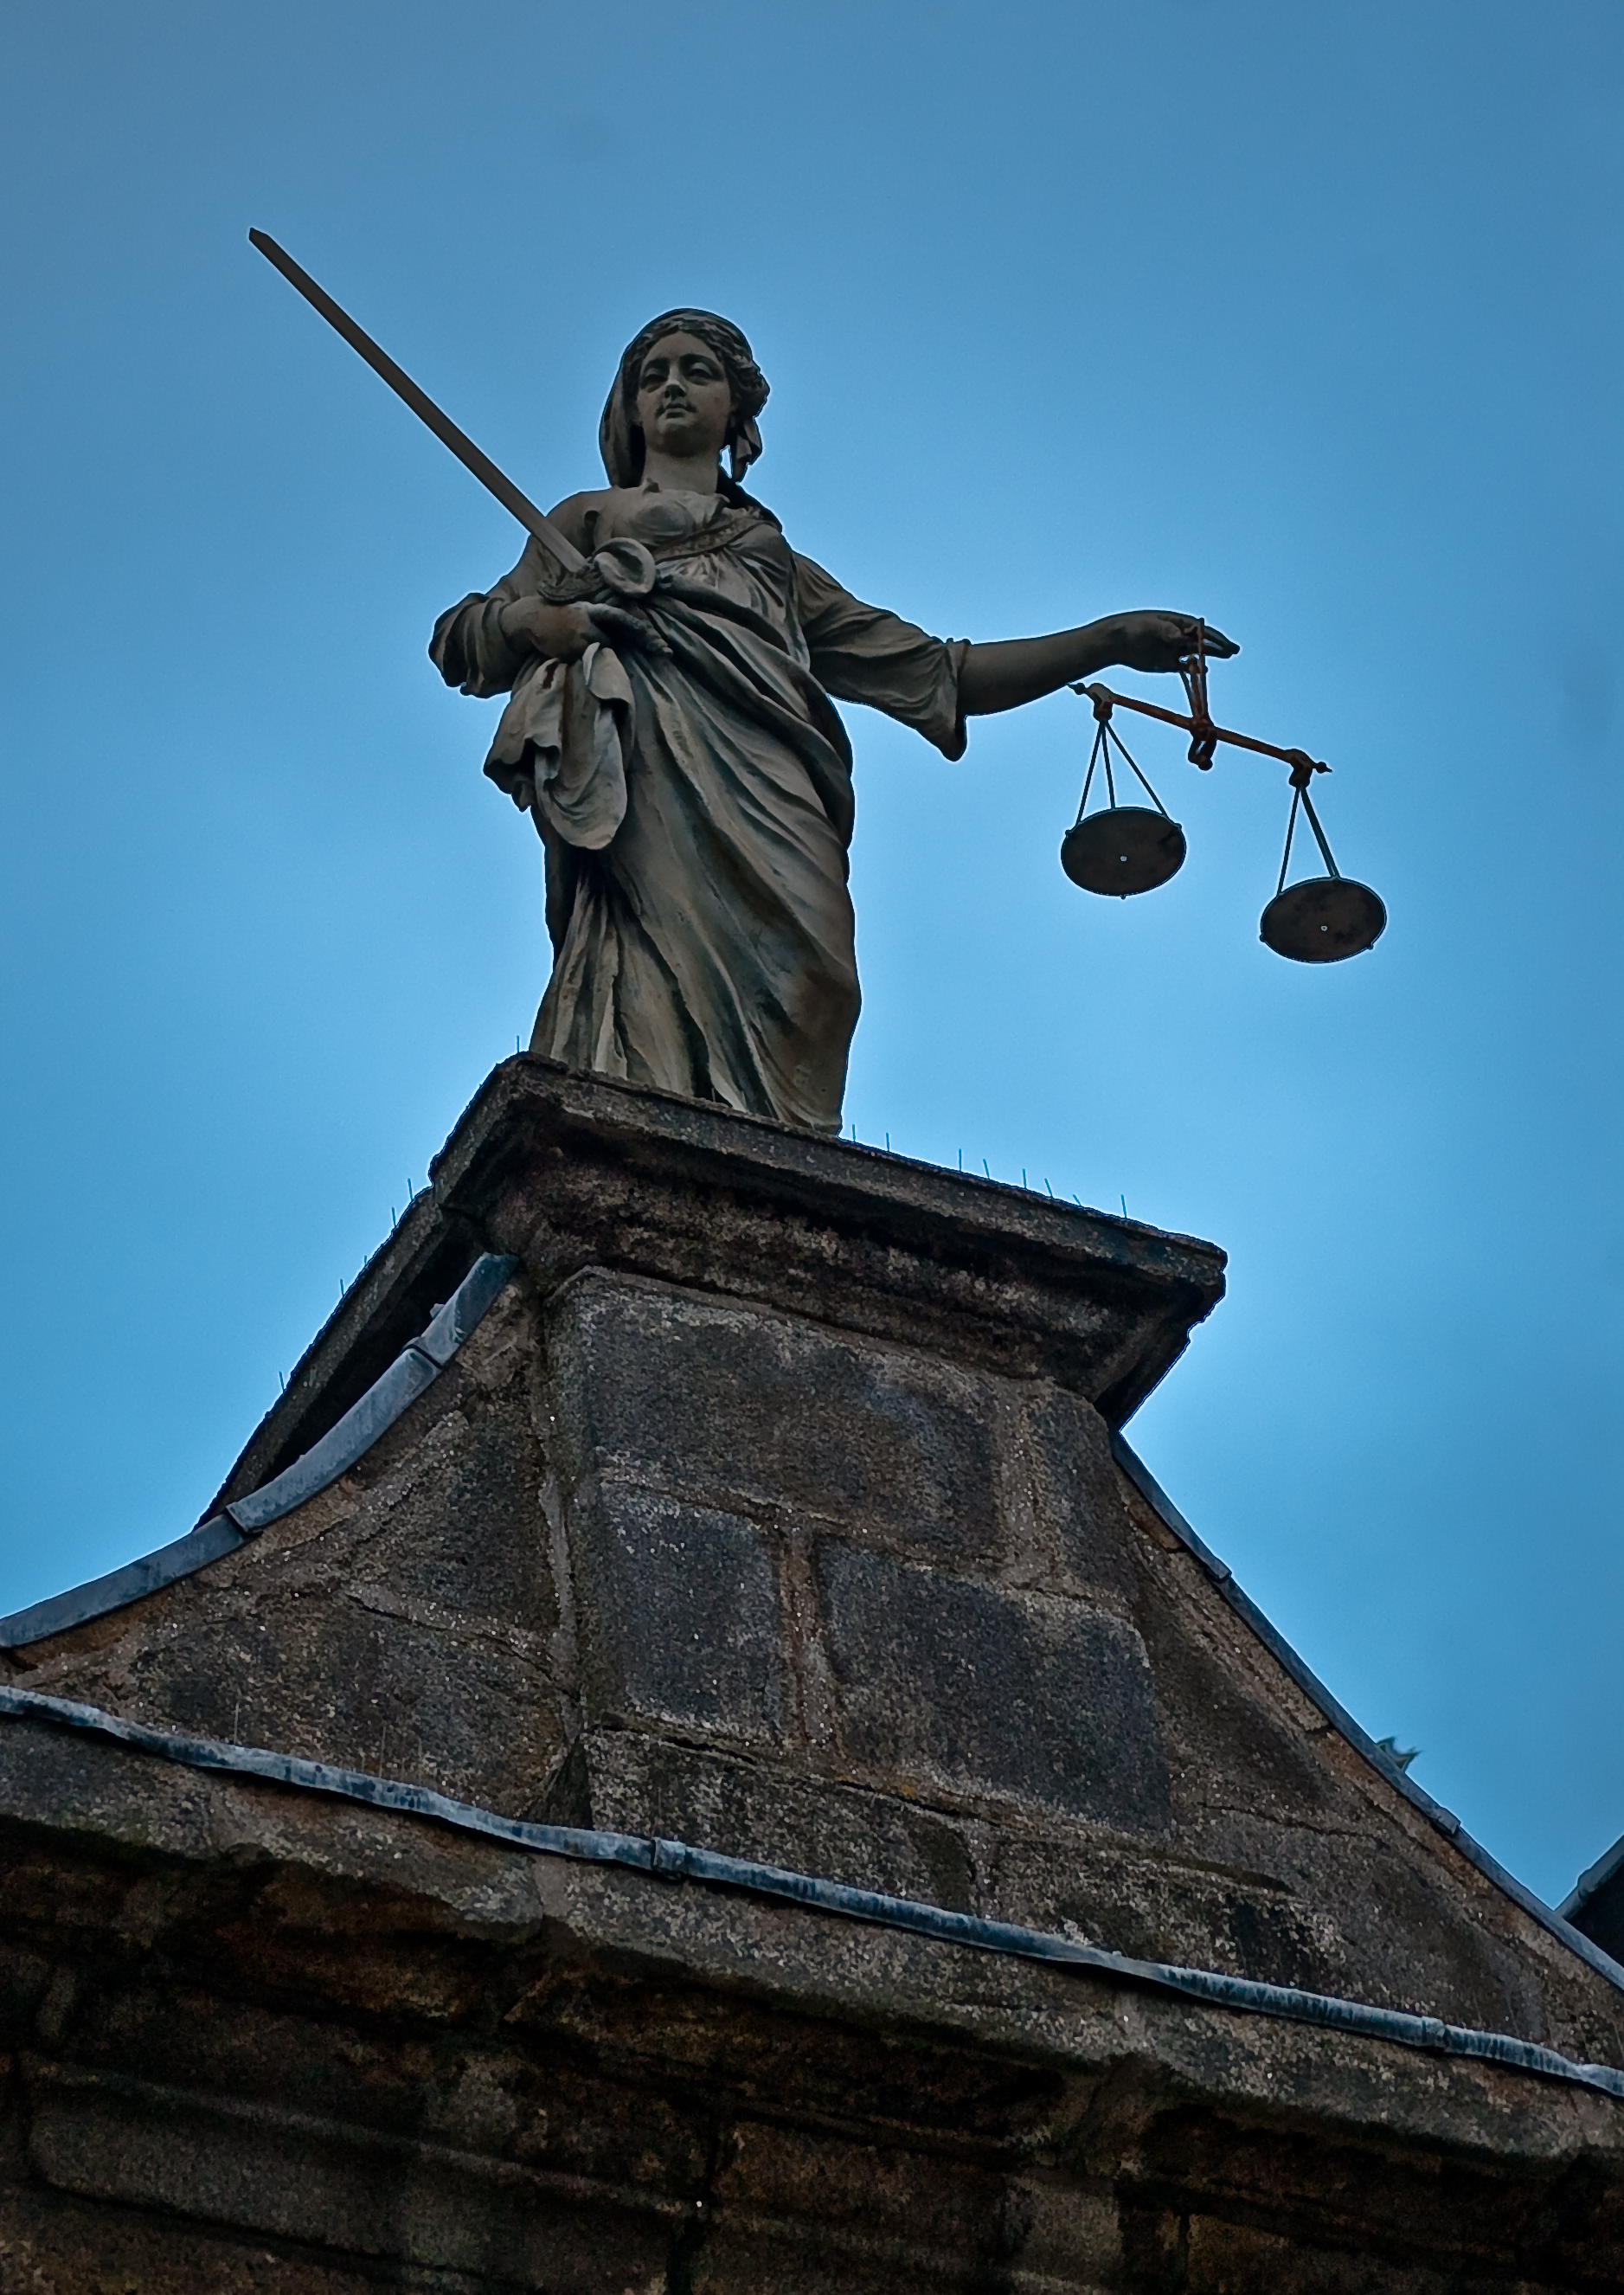 Litigation: Things businesses should consider